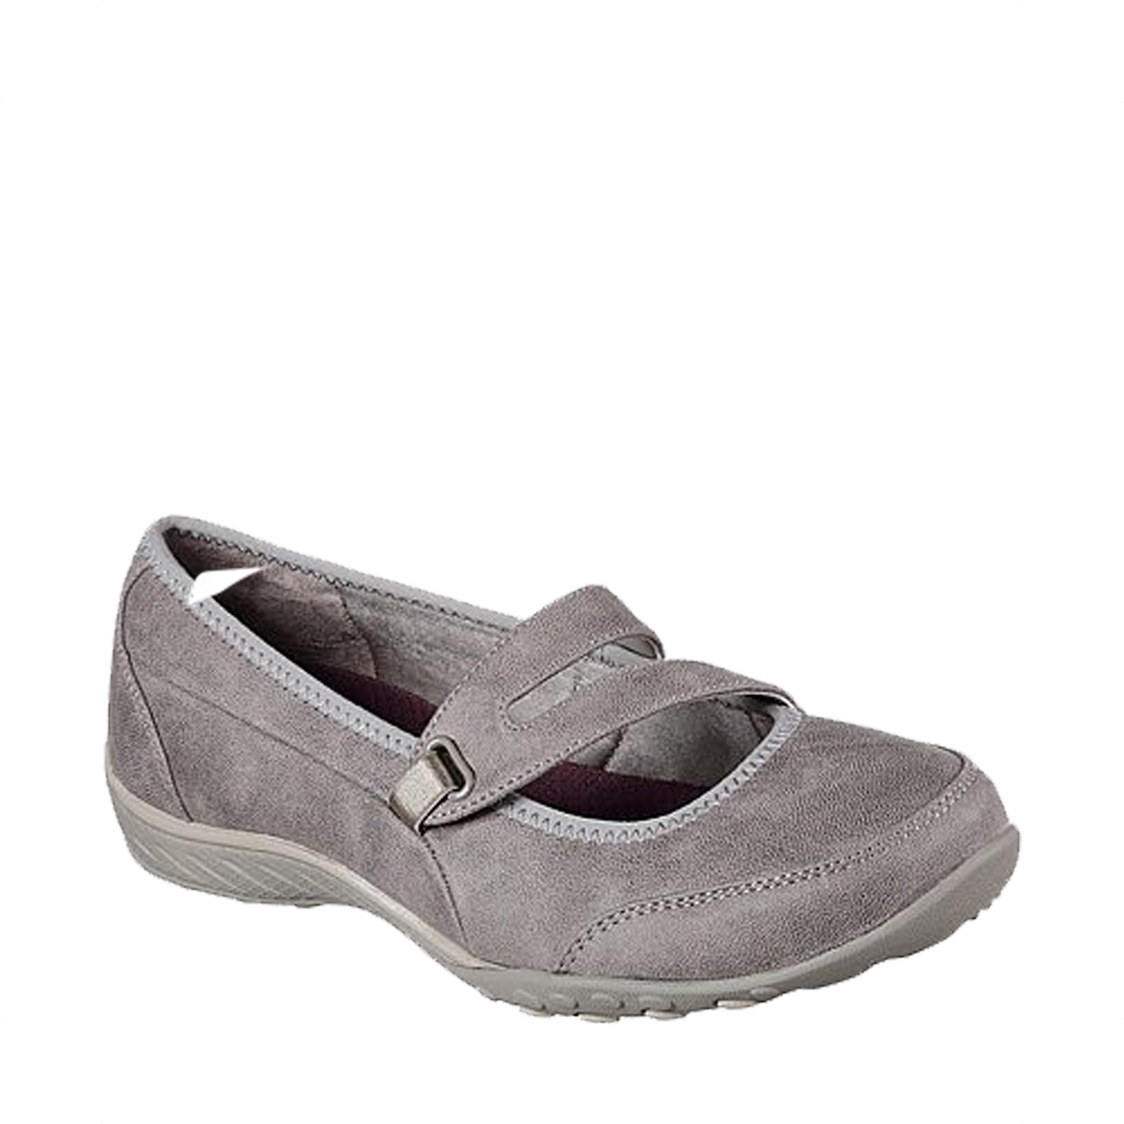 Skechers Relaxed Fit  Breathe Easy - Calmly 23209 - Taupe